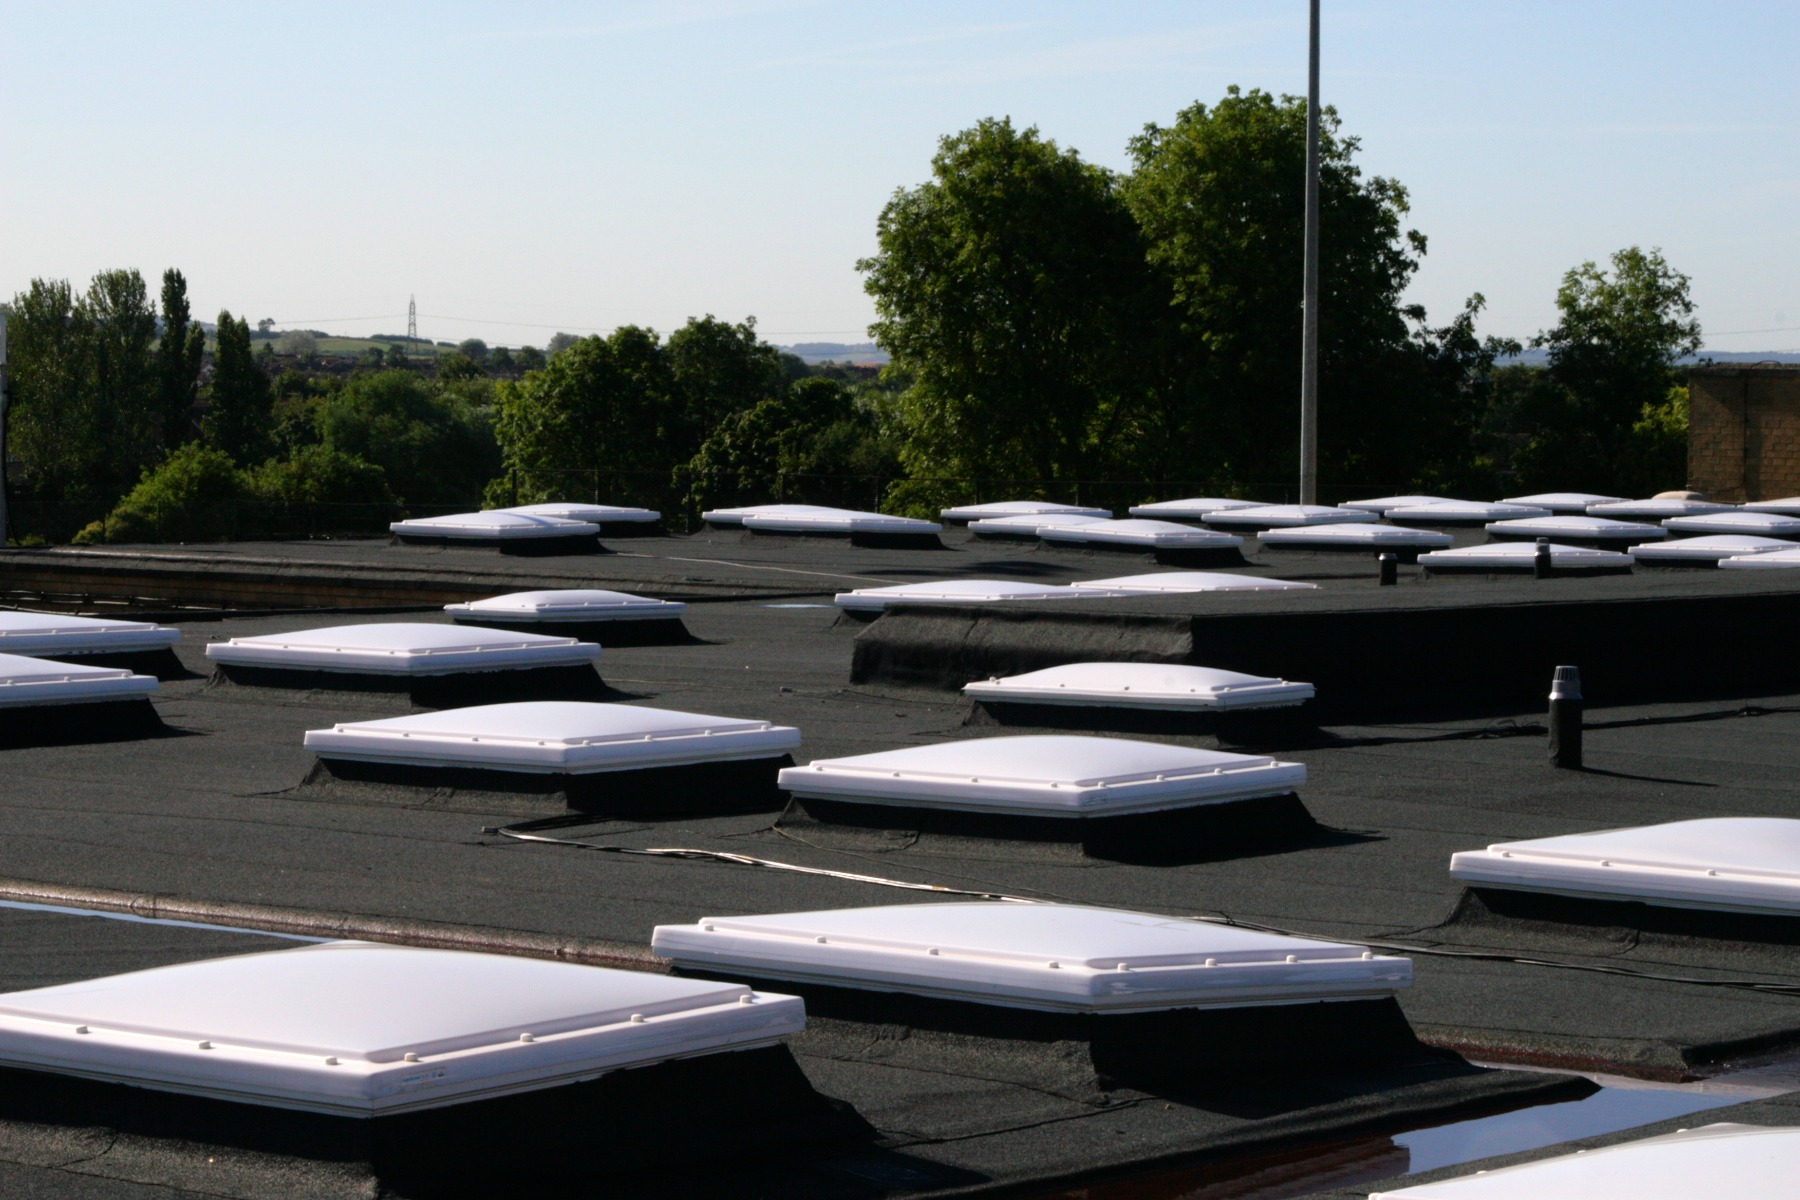 mardome trade industrial roof